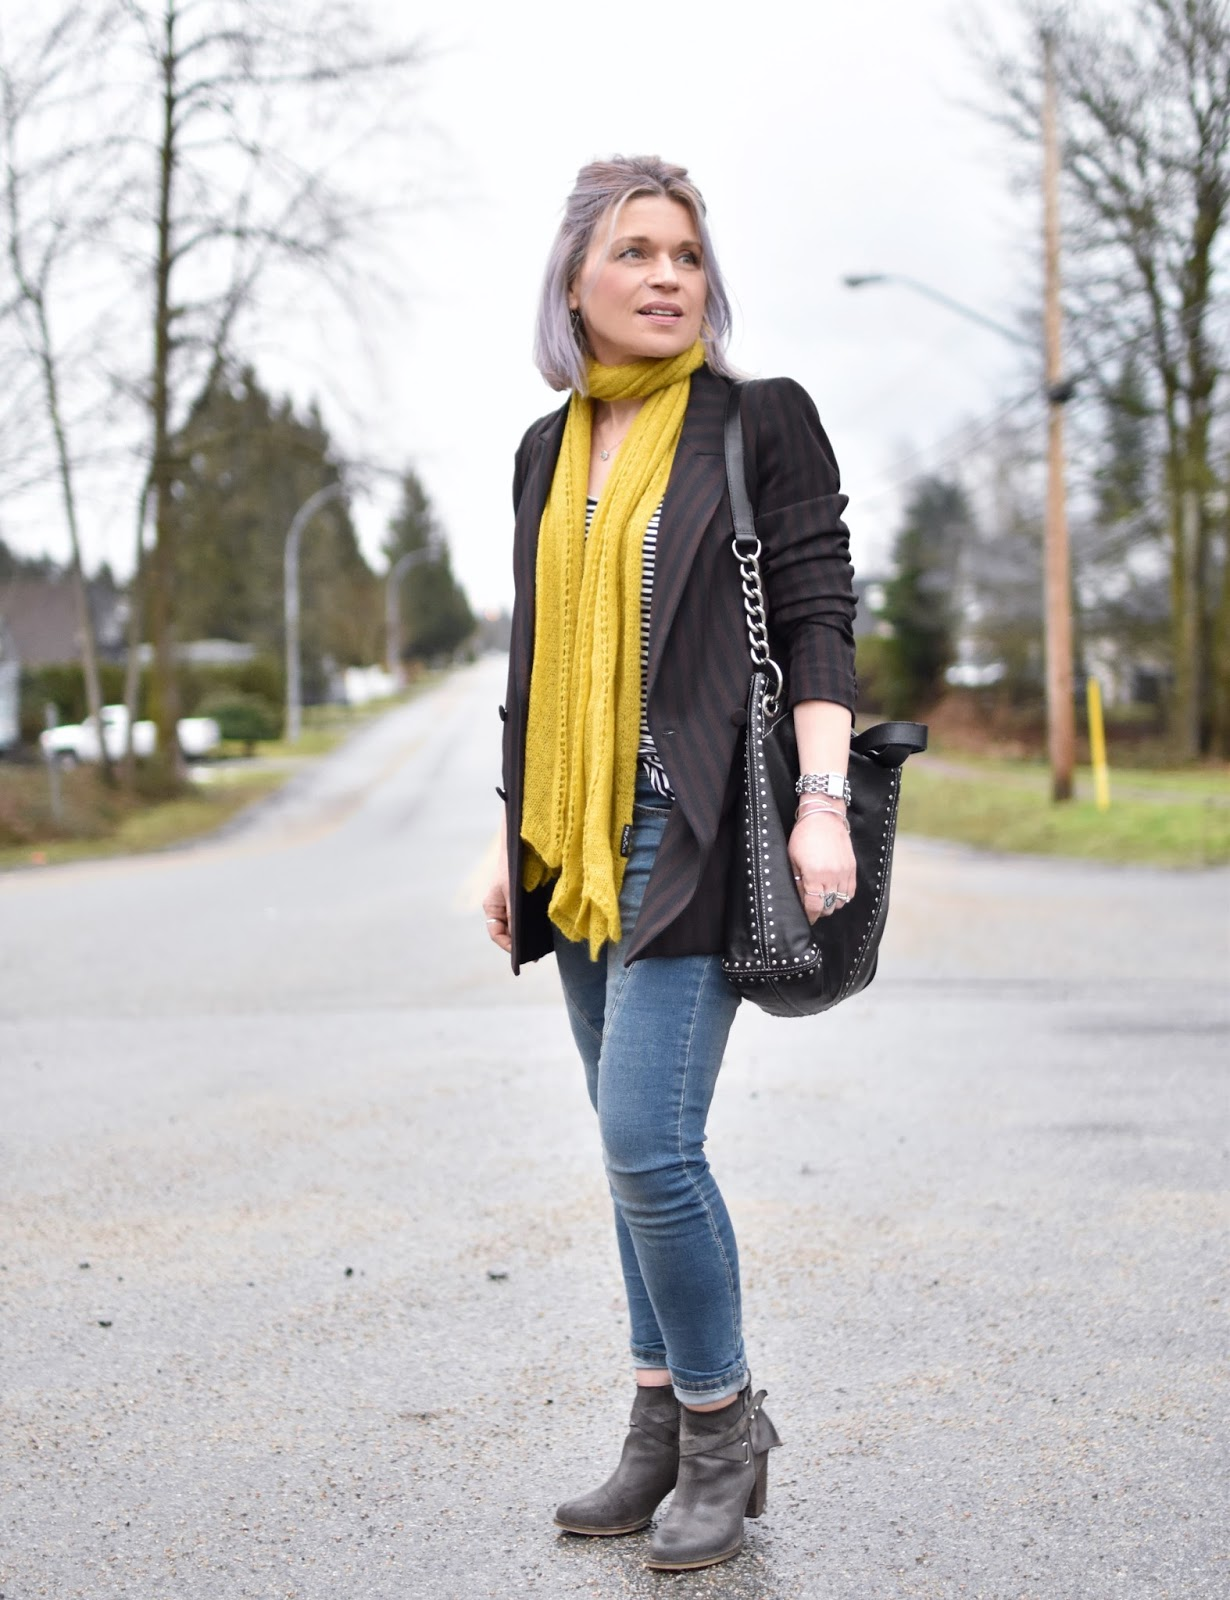 Monika Faulkner outfit inspiration - styling a double-breasted suit jacket with a striped tee, skinny jeans, mustard scarf, and booties